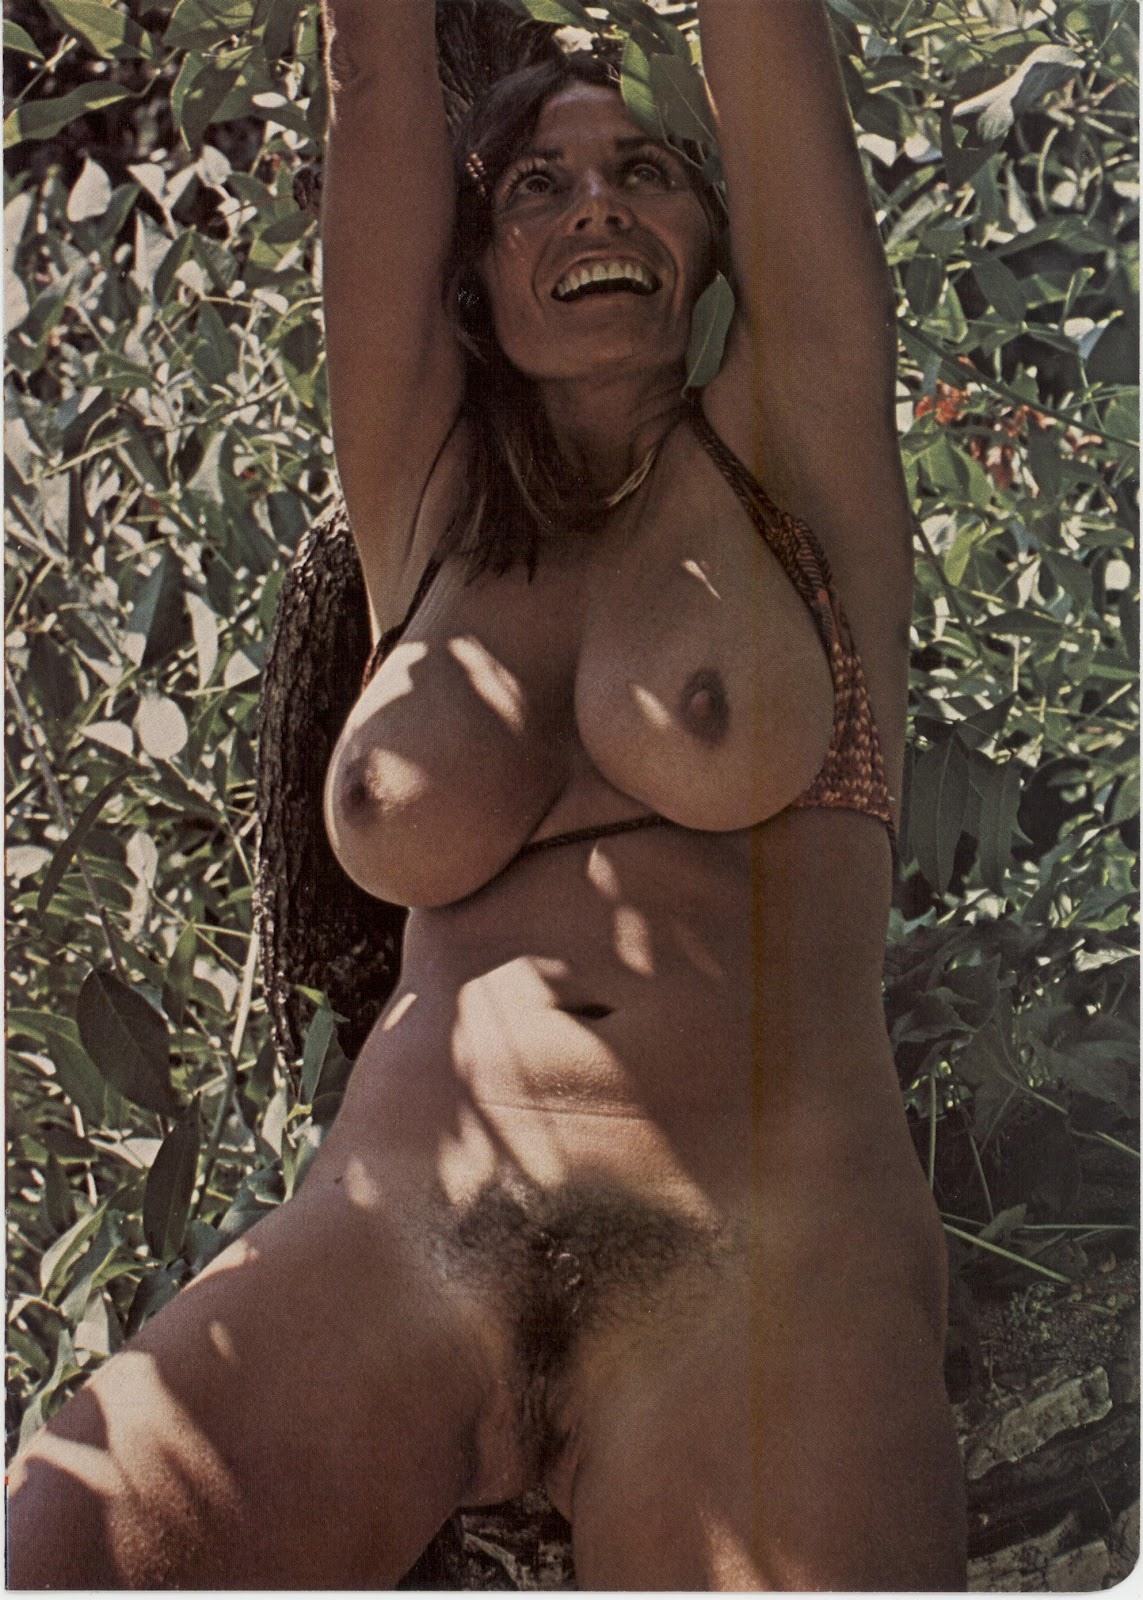 vintage retro and modern day boobs august 2012 free hd